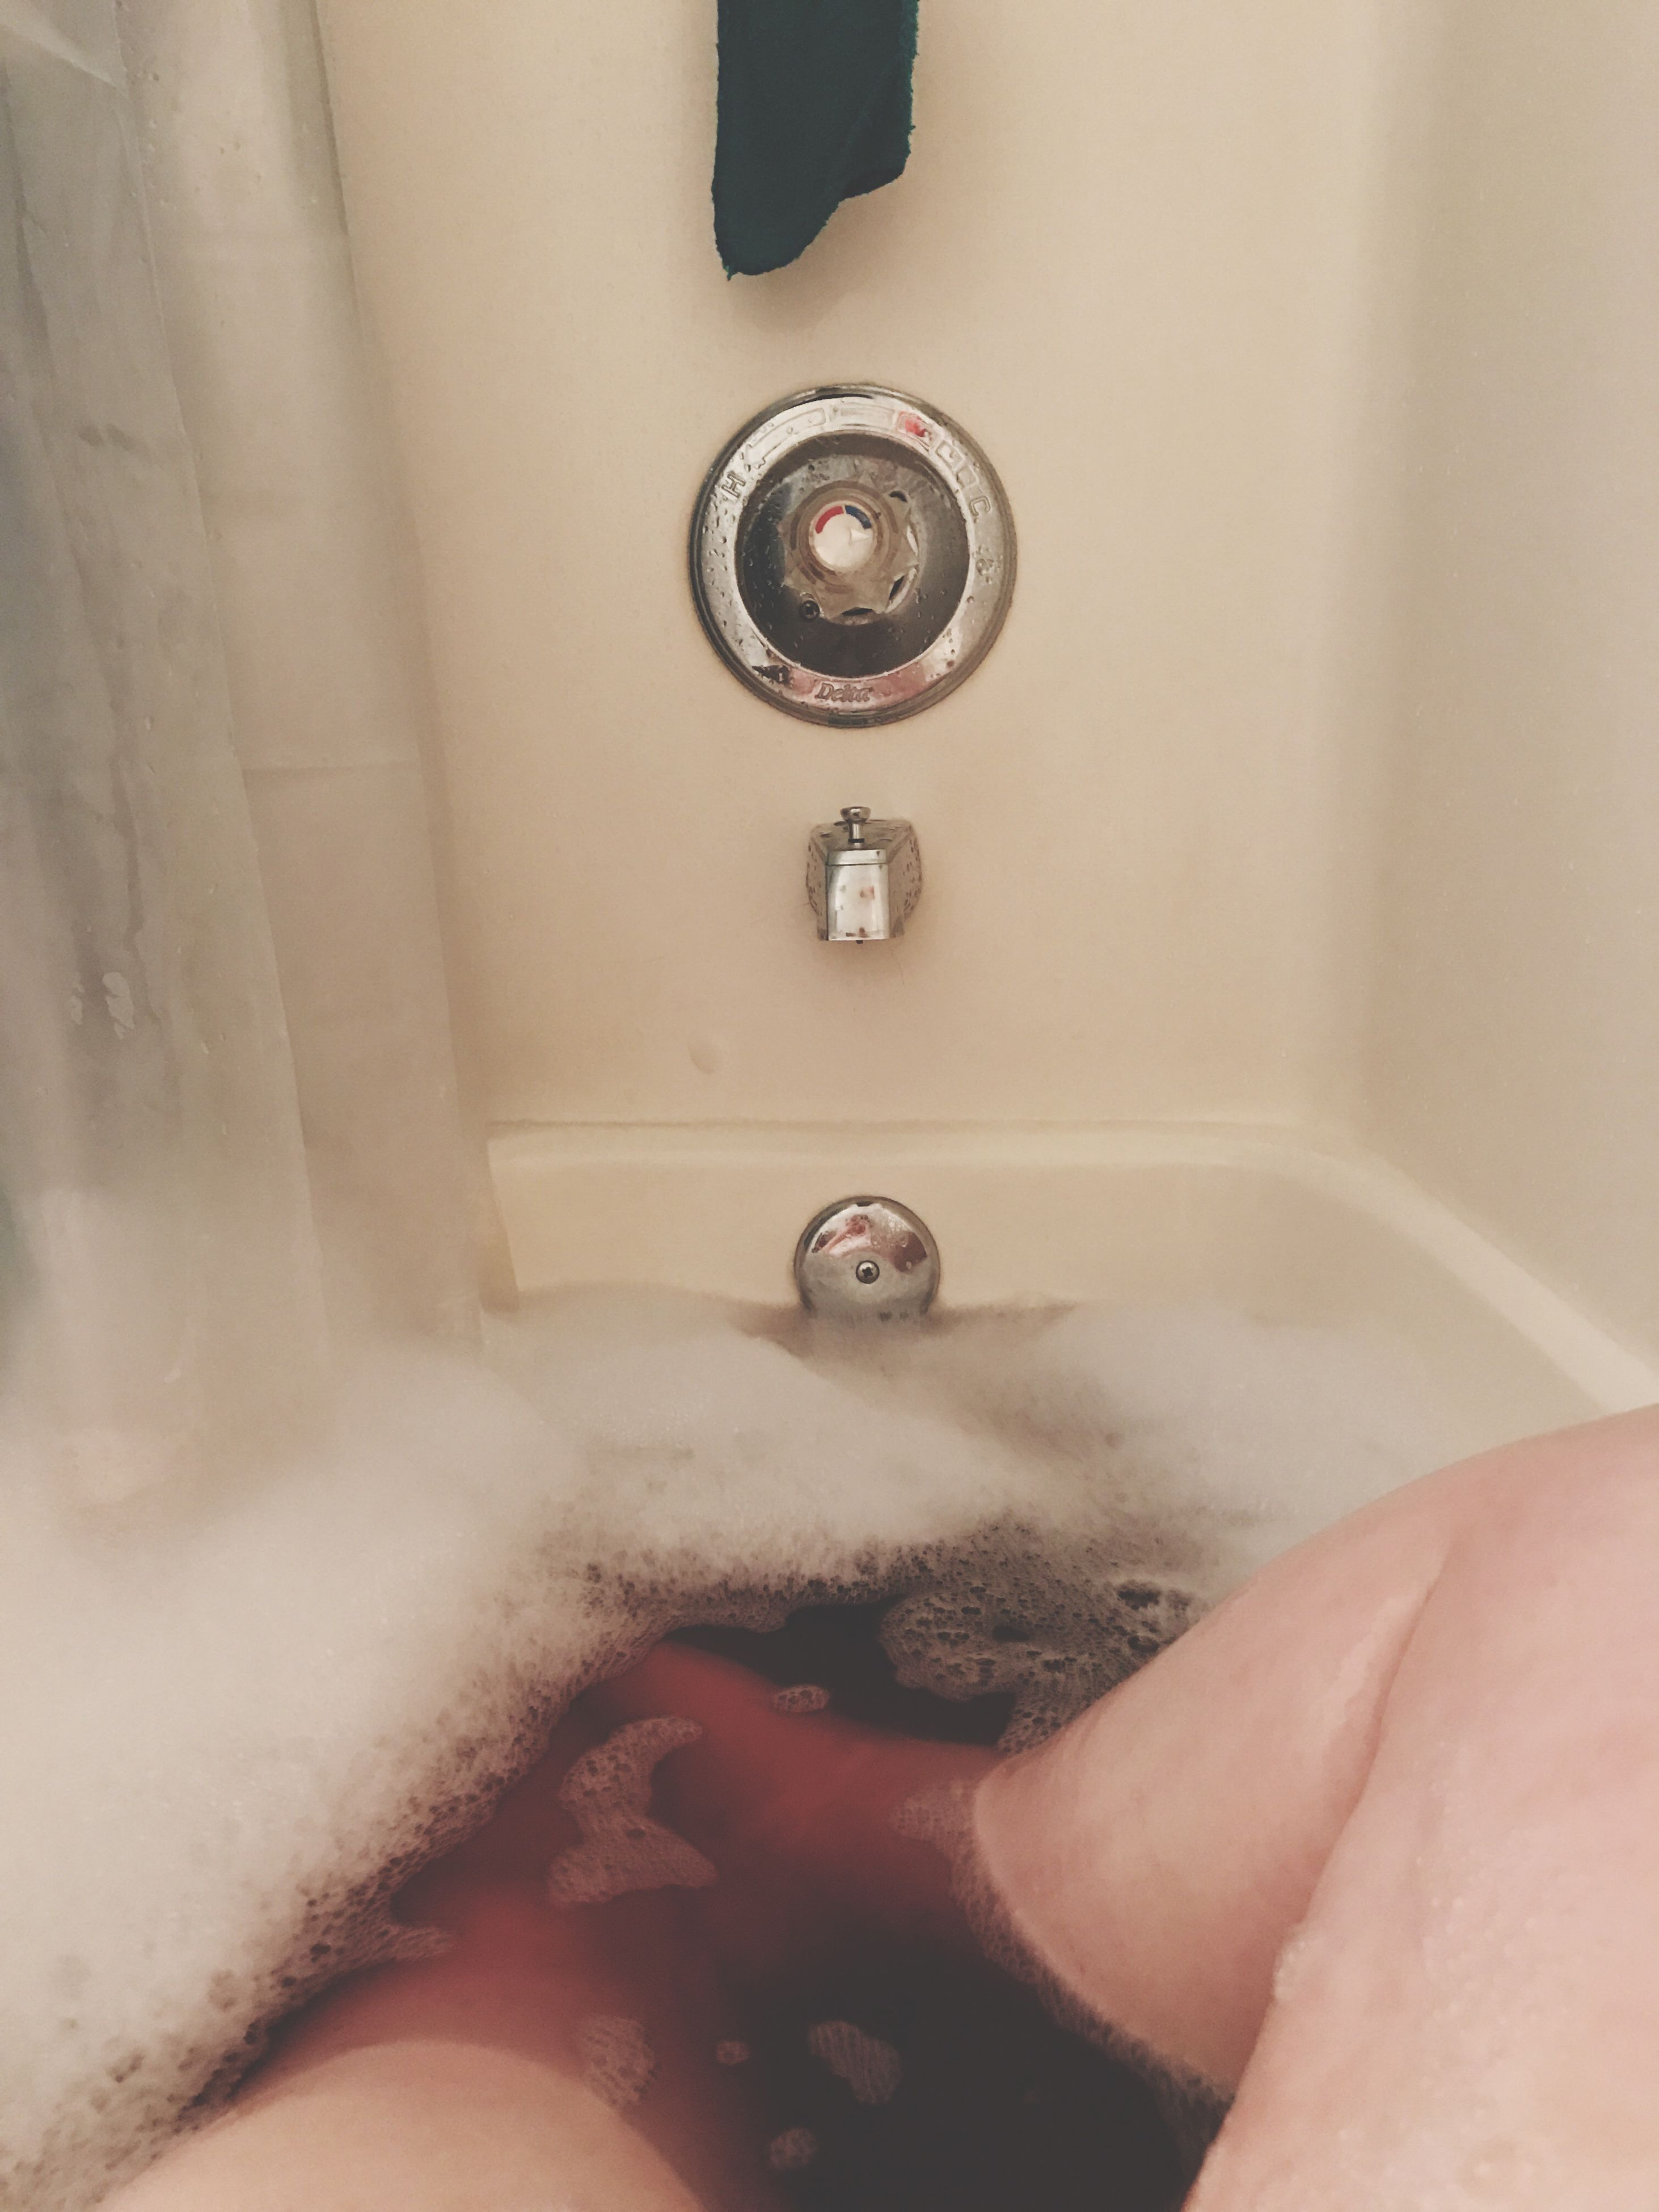 one person, indoors, human body part, real people, bathroom, domestic bathroom, close-up, domestic room, cleaning, bathtub, home interior, human leg, hygiene, human skin, human hand, adults only, adult, people, day